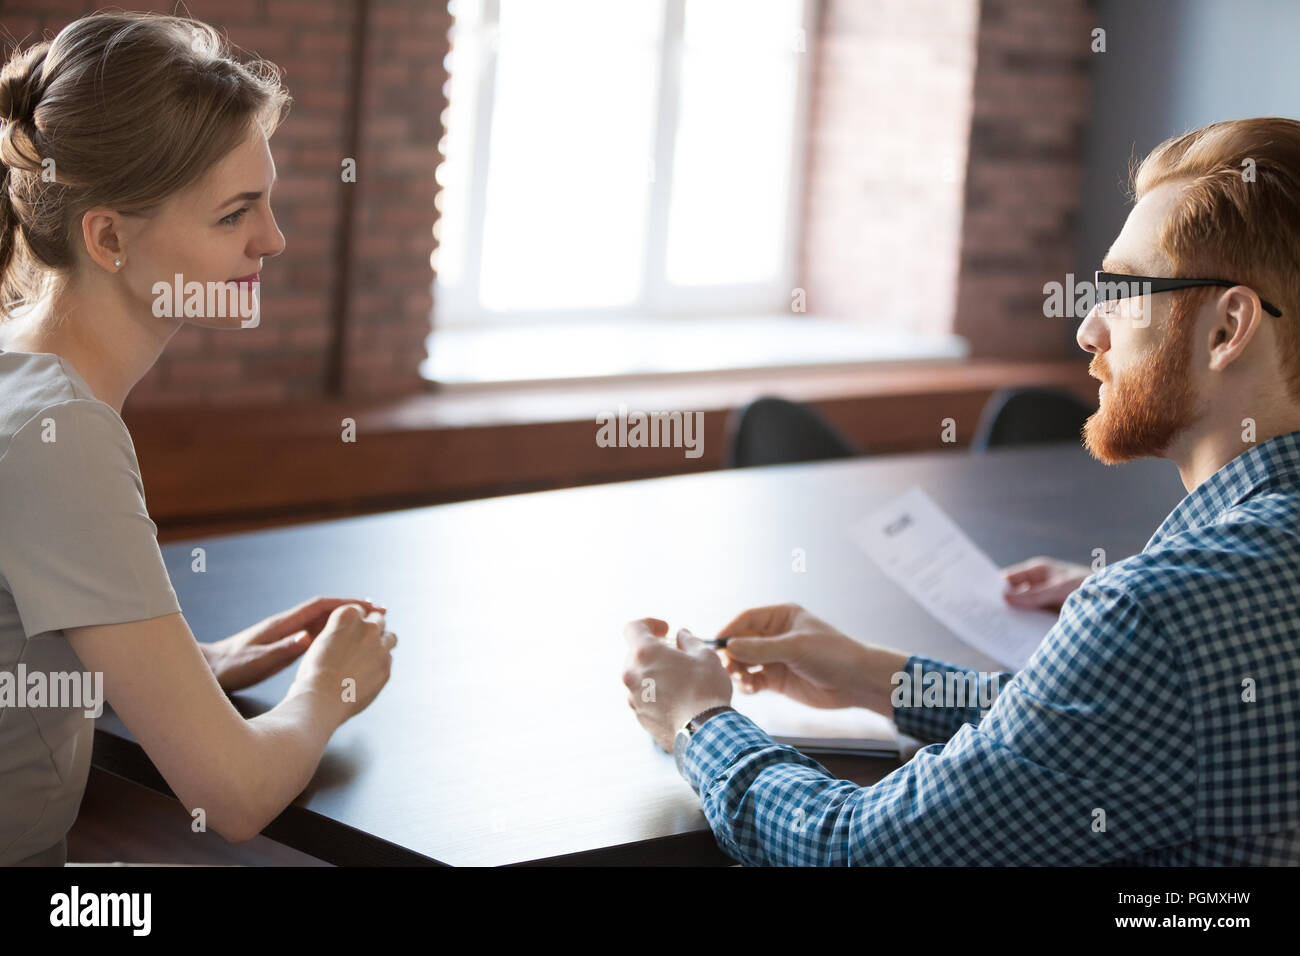 Recruiter considering female applicant candidature during interv - Stock Image